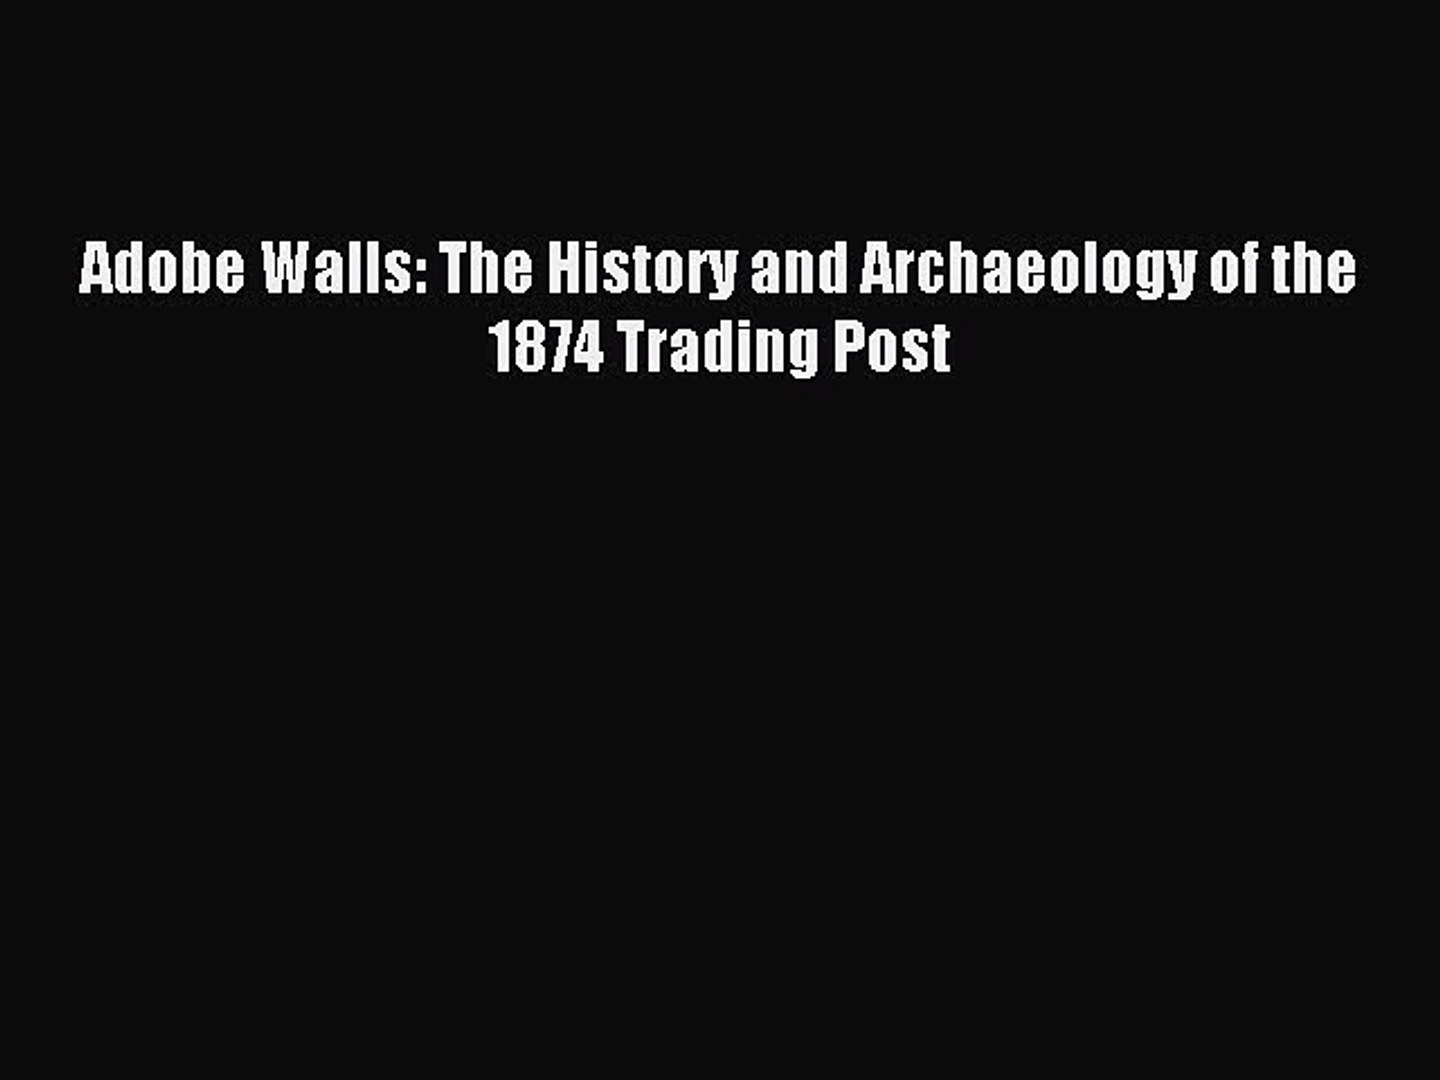 The History and Archeology of the 1874 Trading Post Adobe Walls